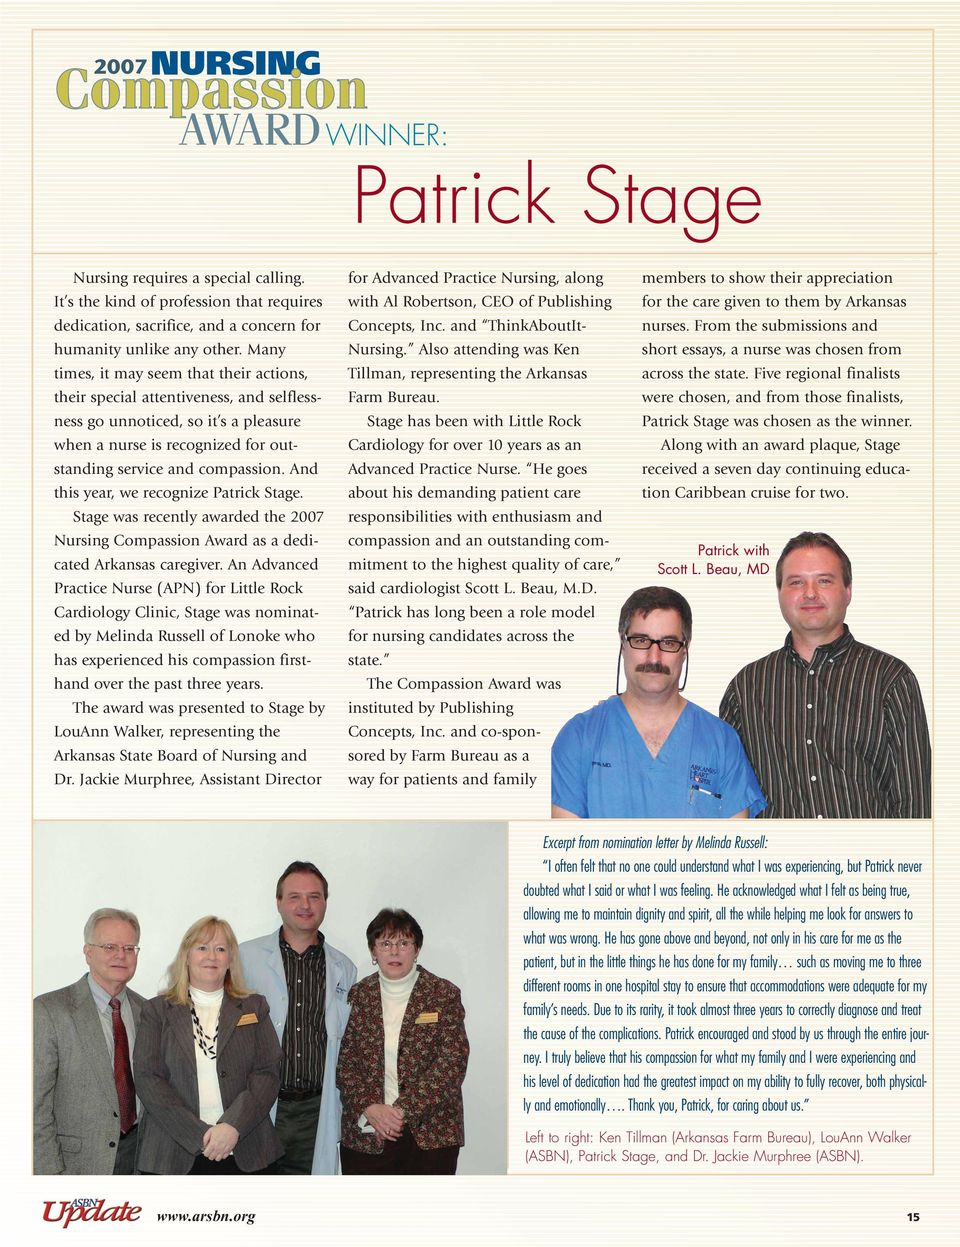 And this year, we recognize Patrick Stage. Stage was recently awarded the 2007 Nursing Compassion Award as a dedicated Arkansas caregiver.